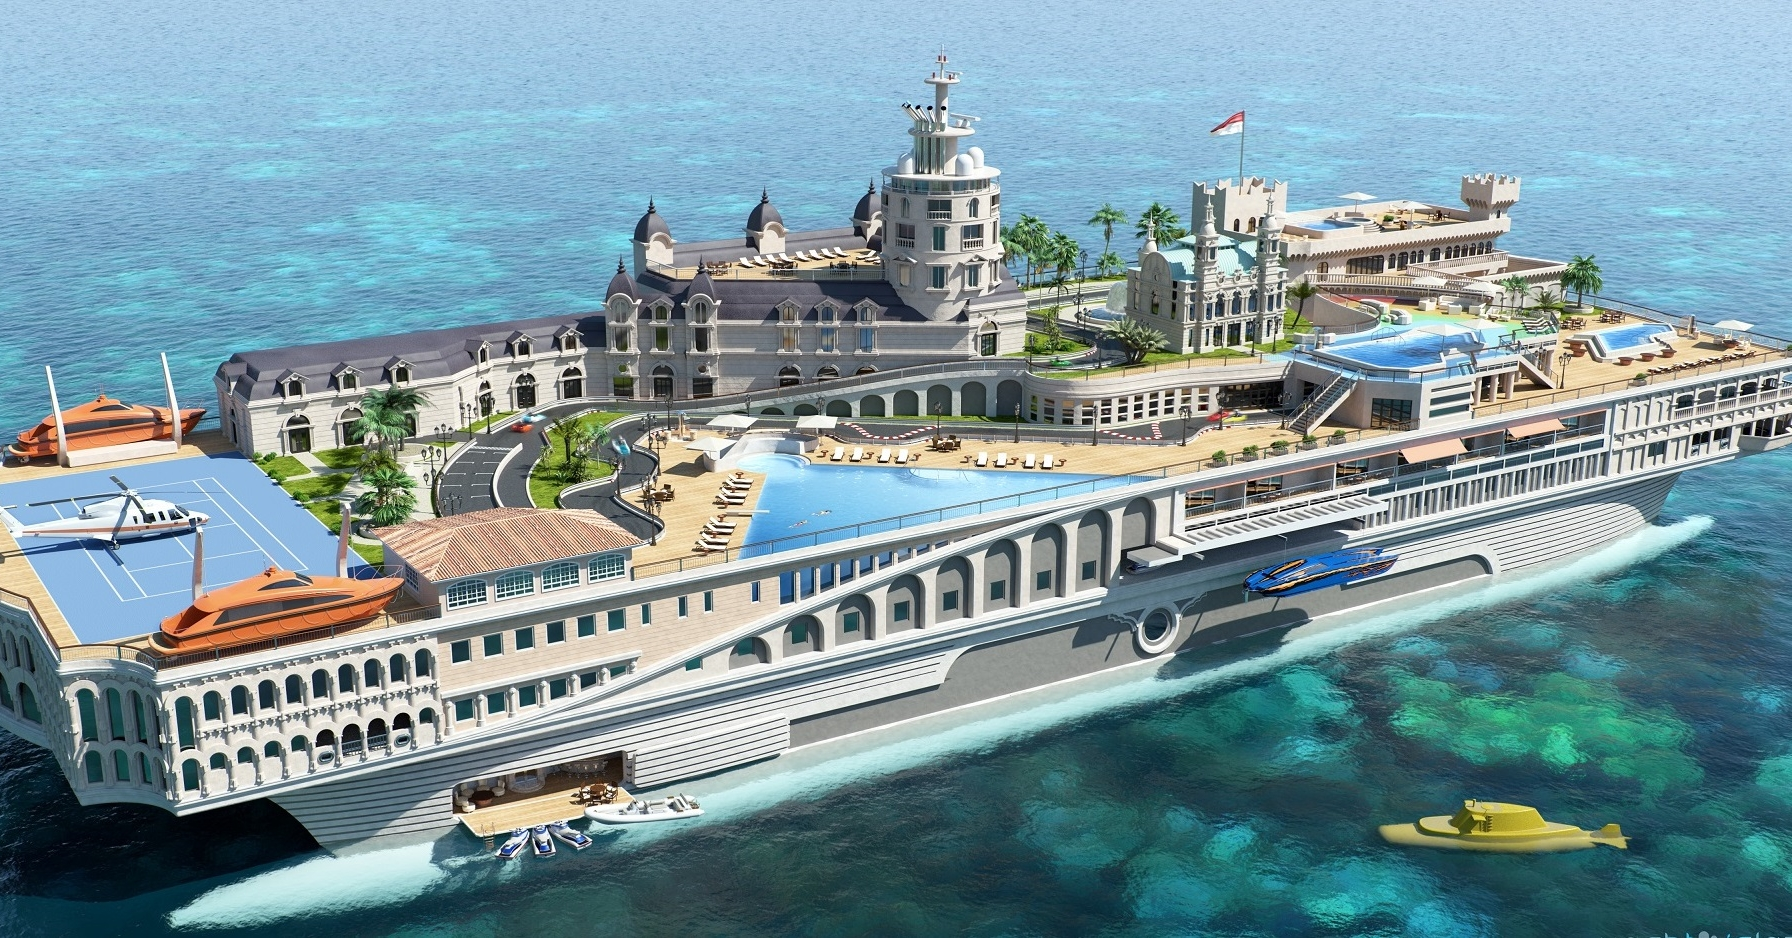 http://weboatlovers.wehomeowners.com/wp-content/uploads/2016/07/Streets-of-Monaco1.jpg